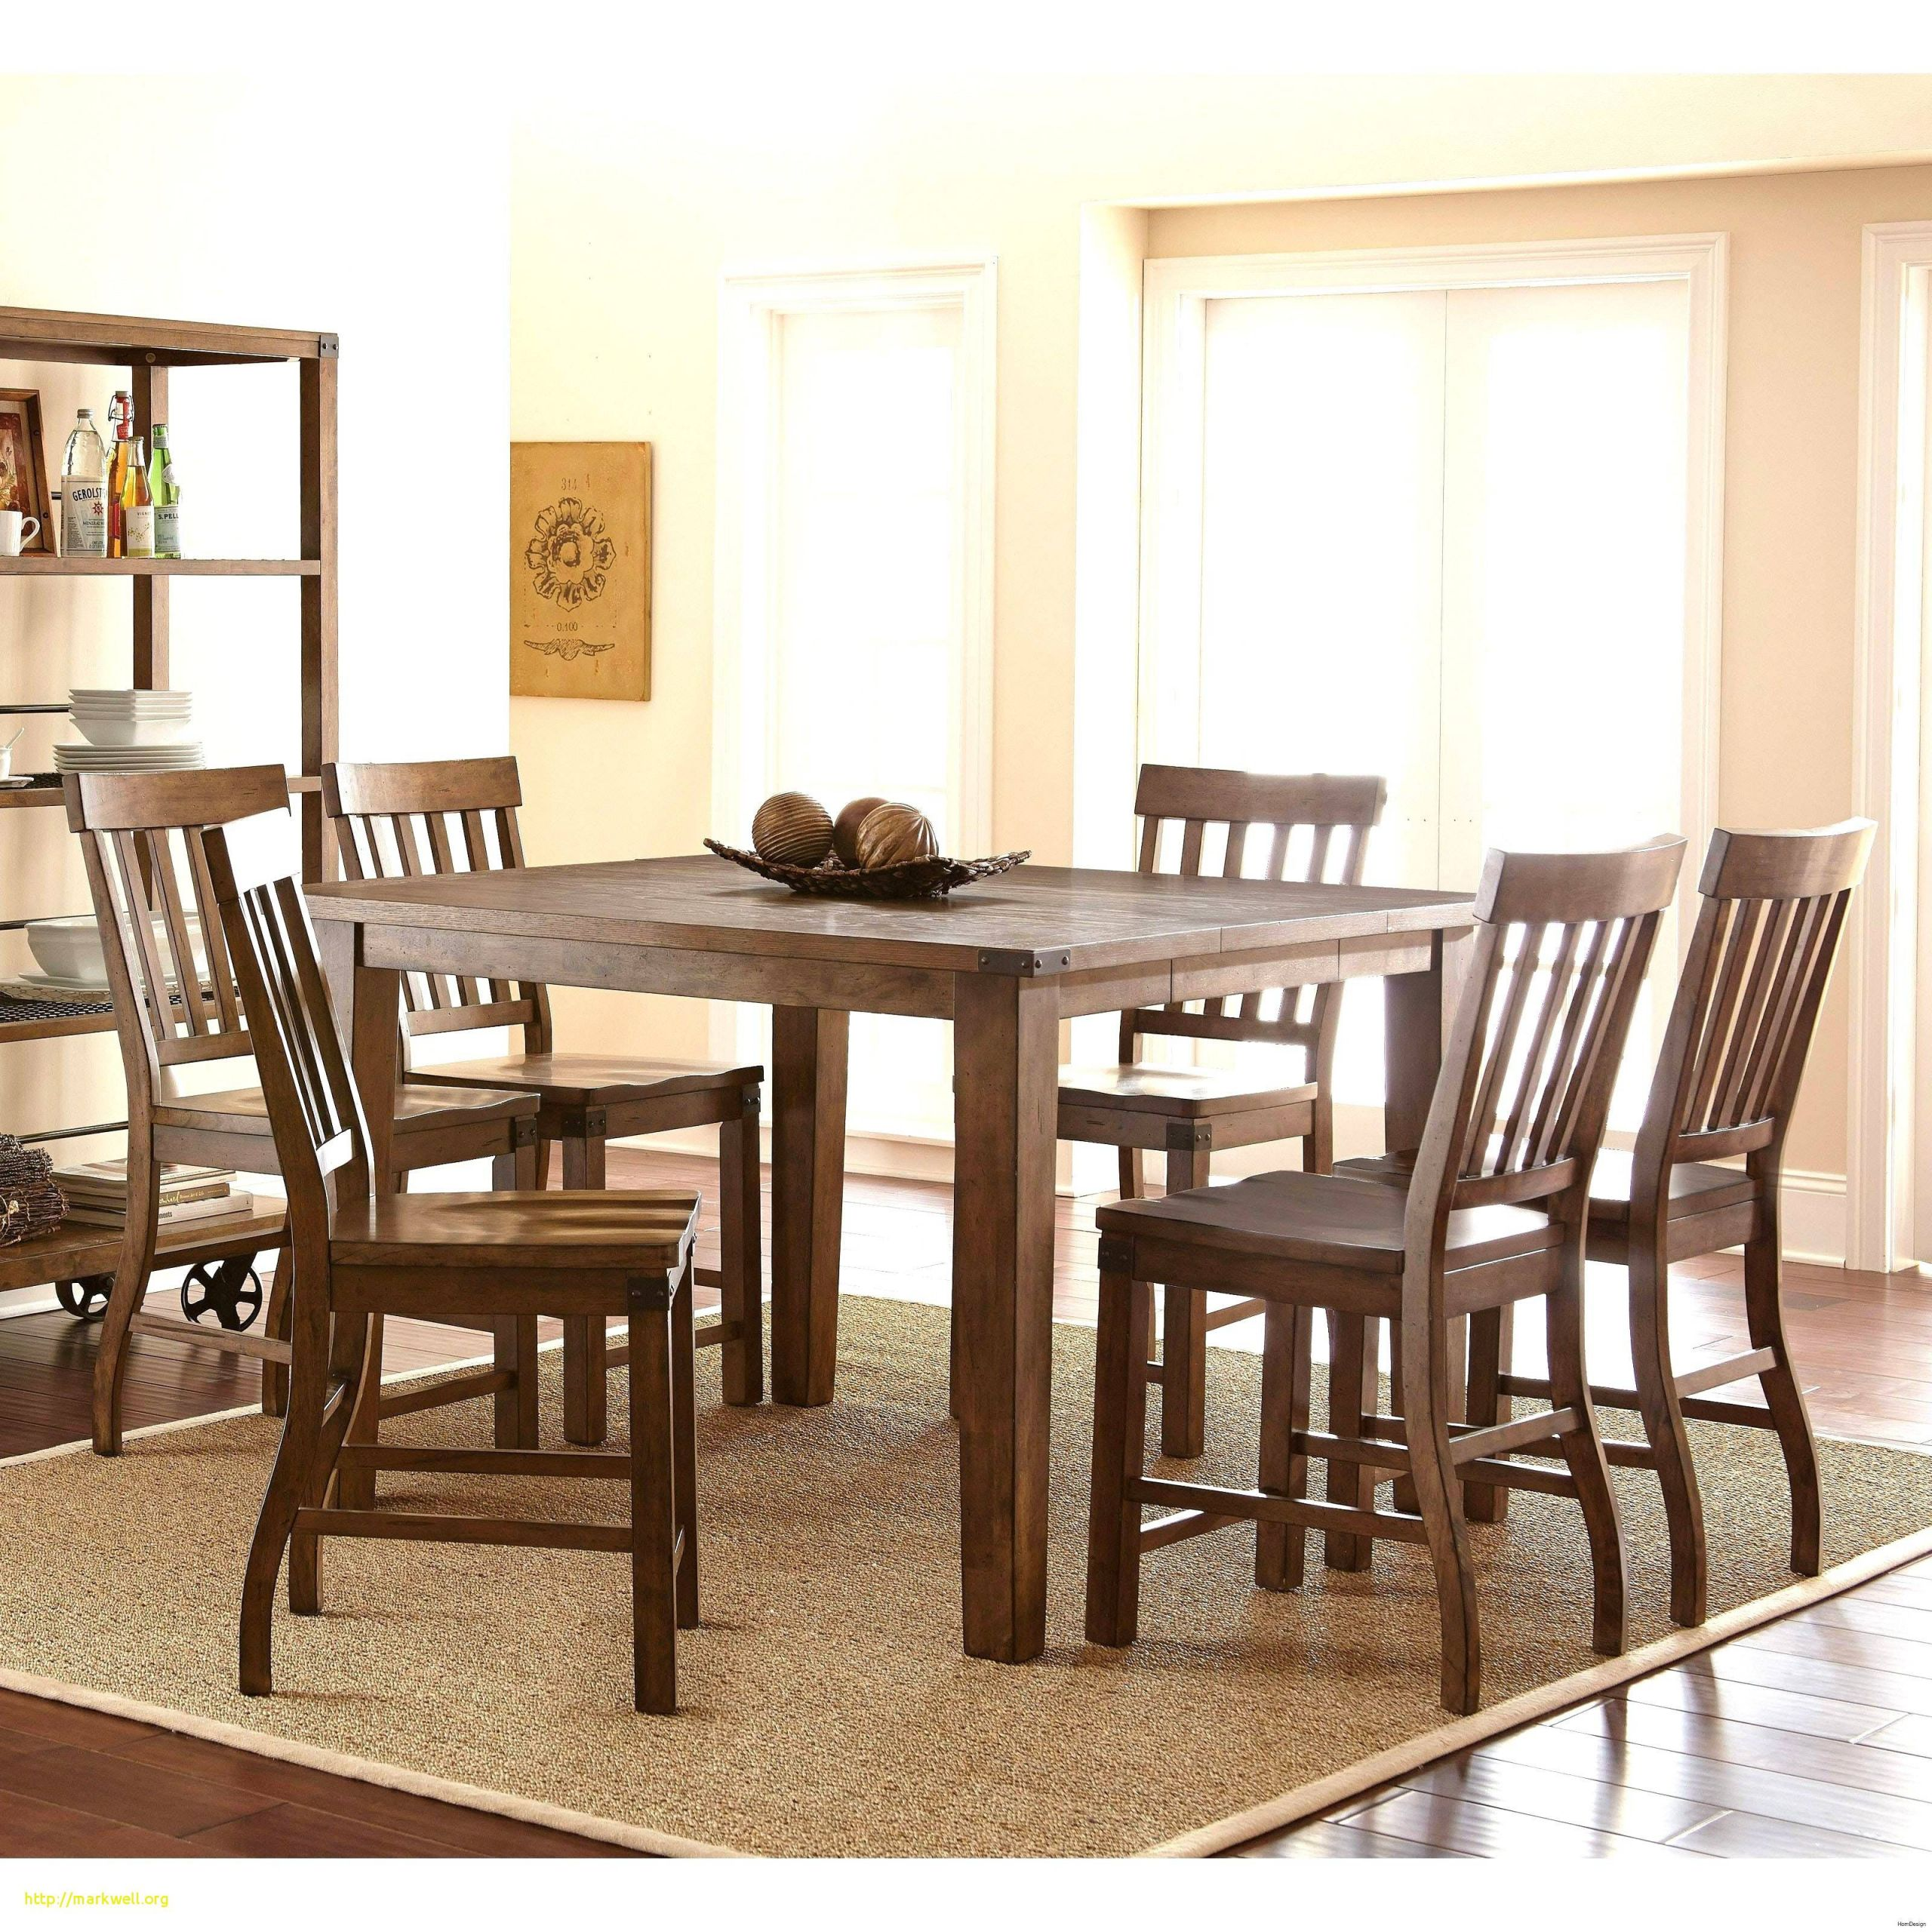 walmart dining room chairs awesome brown dining room fresh 25 dining room chairs brown scheme home of walmart dining room chairs